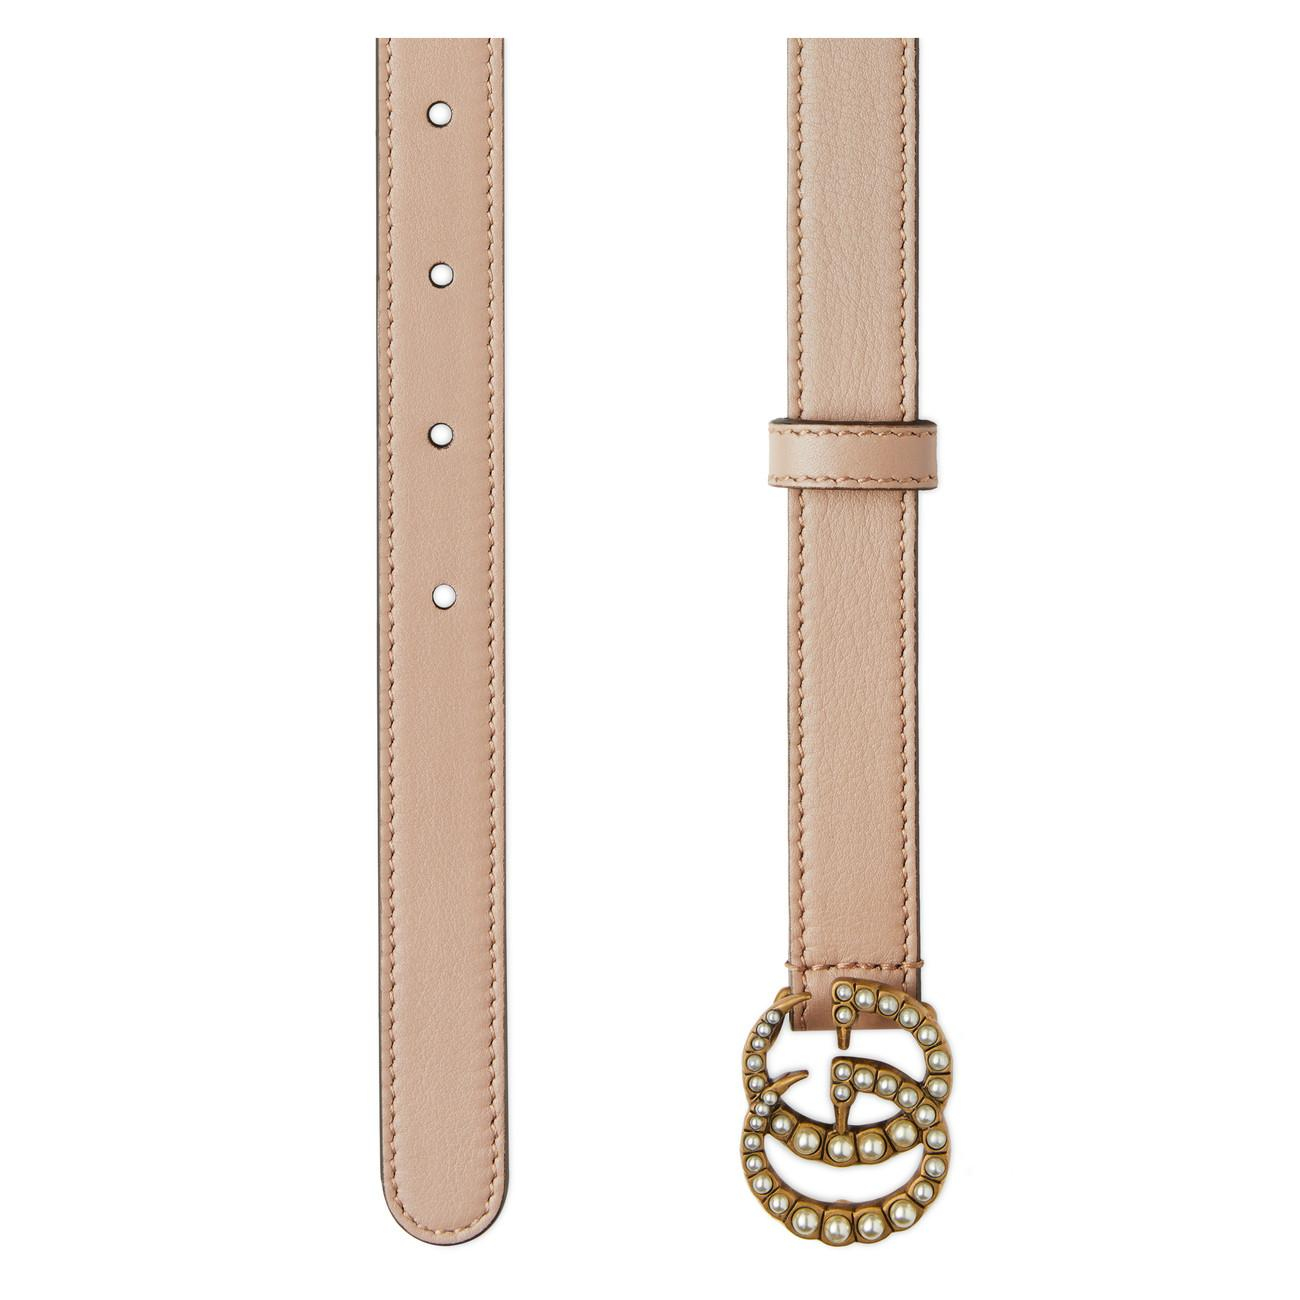 70d3041a173 Gucci - Multicolor Pearl Double G Buckle Belt - Lyst. View fullscreen